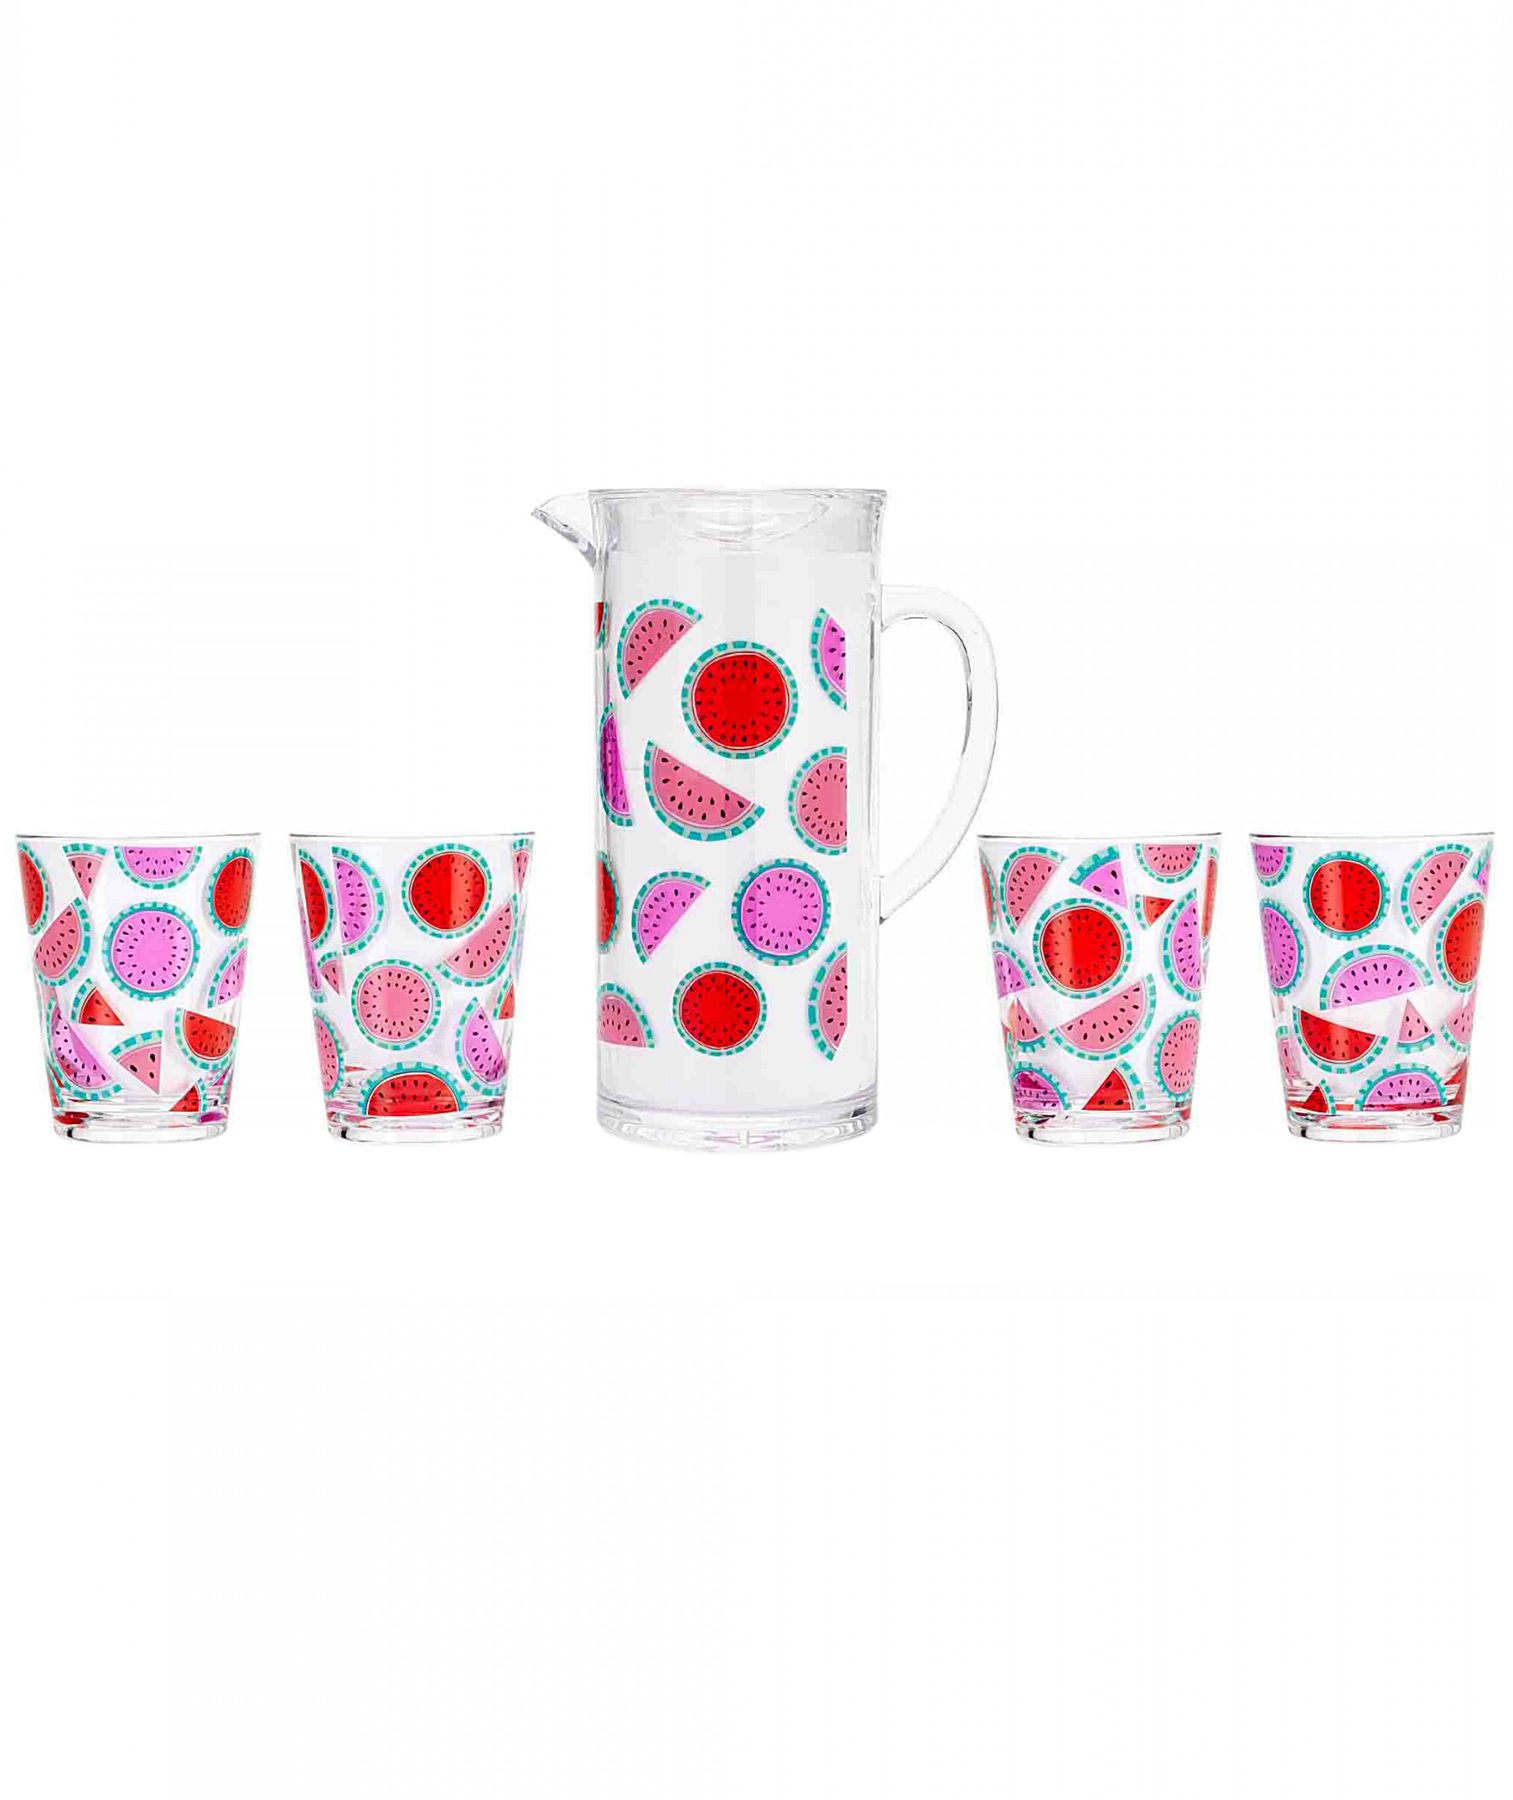 Watermelon Tumbler Set